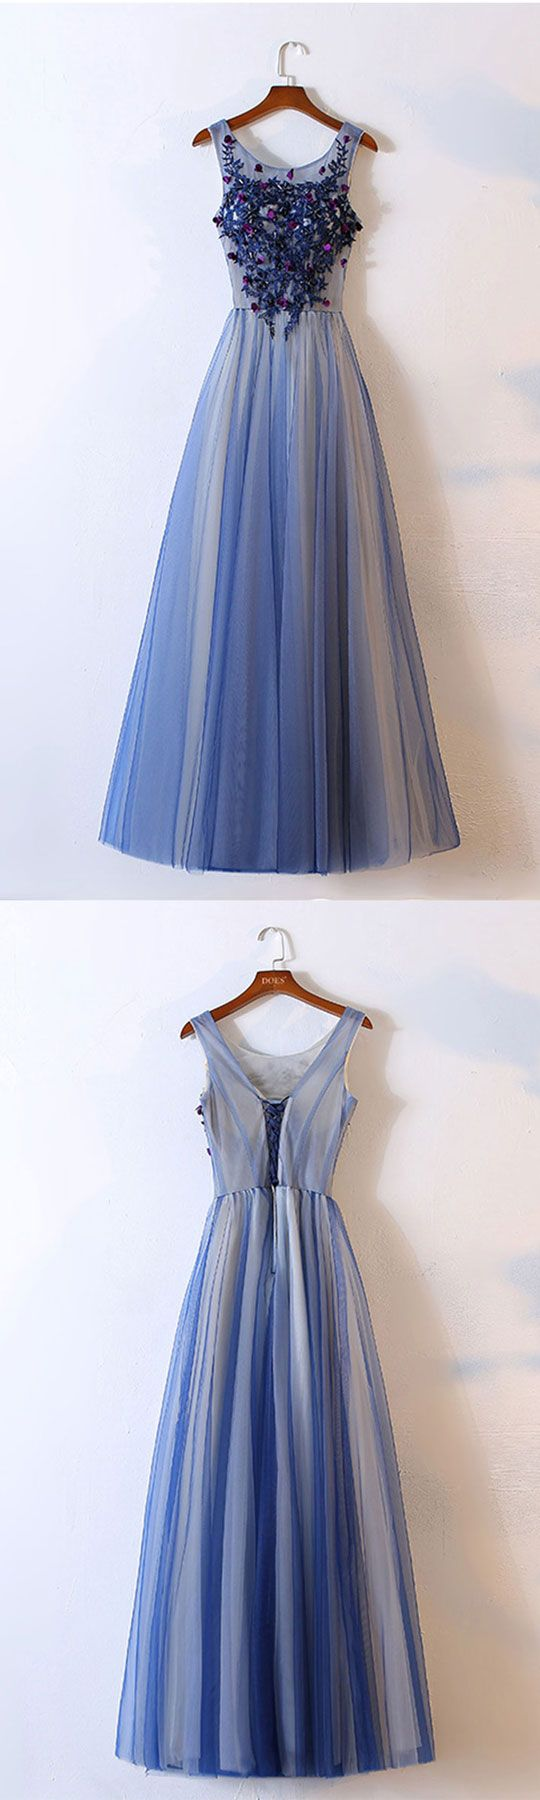 blue tulle round neck long prom dress, tulle evening dress, tulle bridesmaid dress